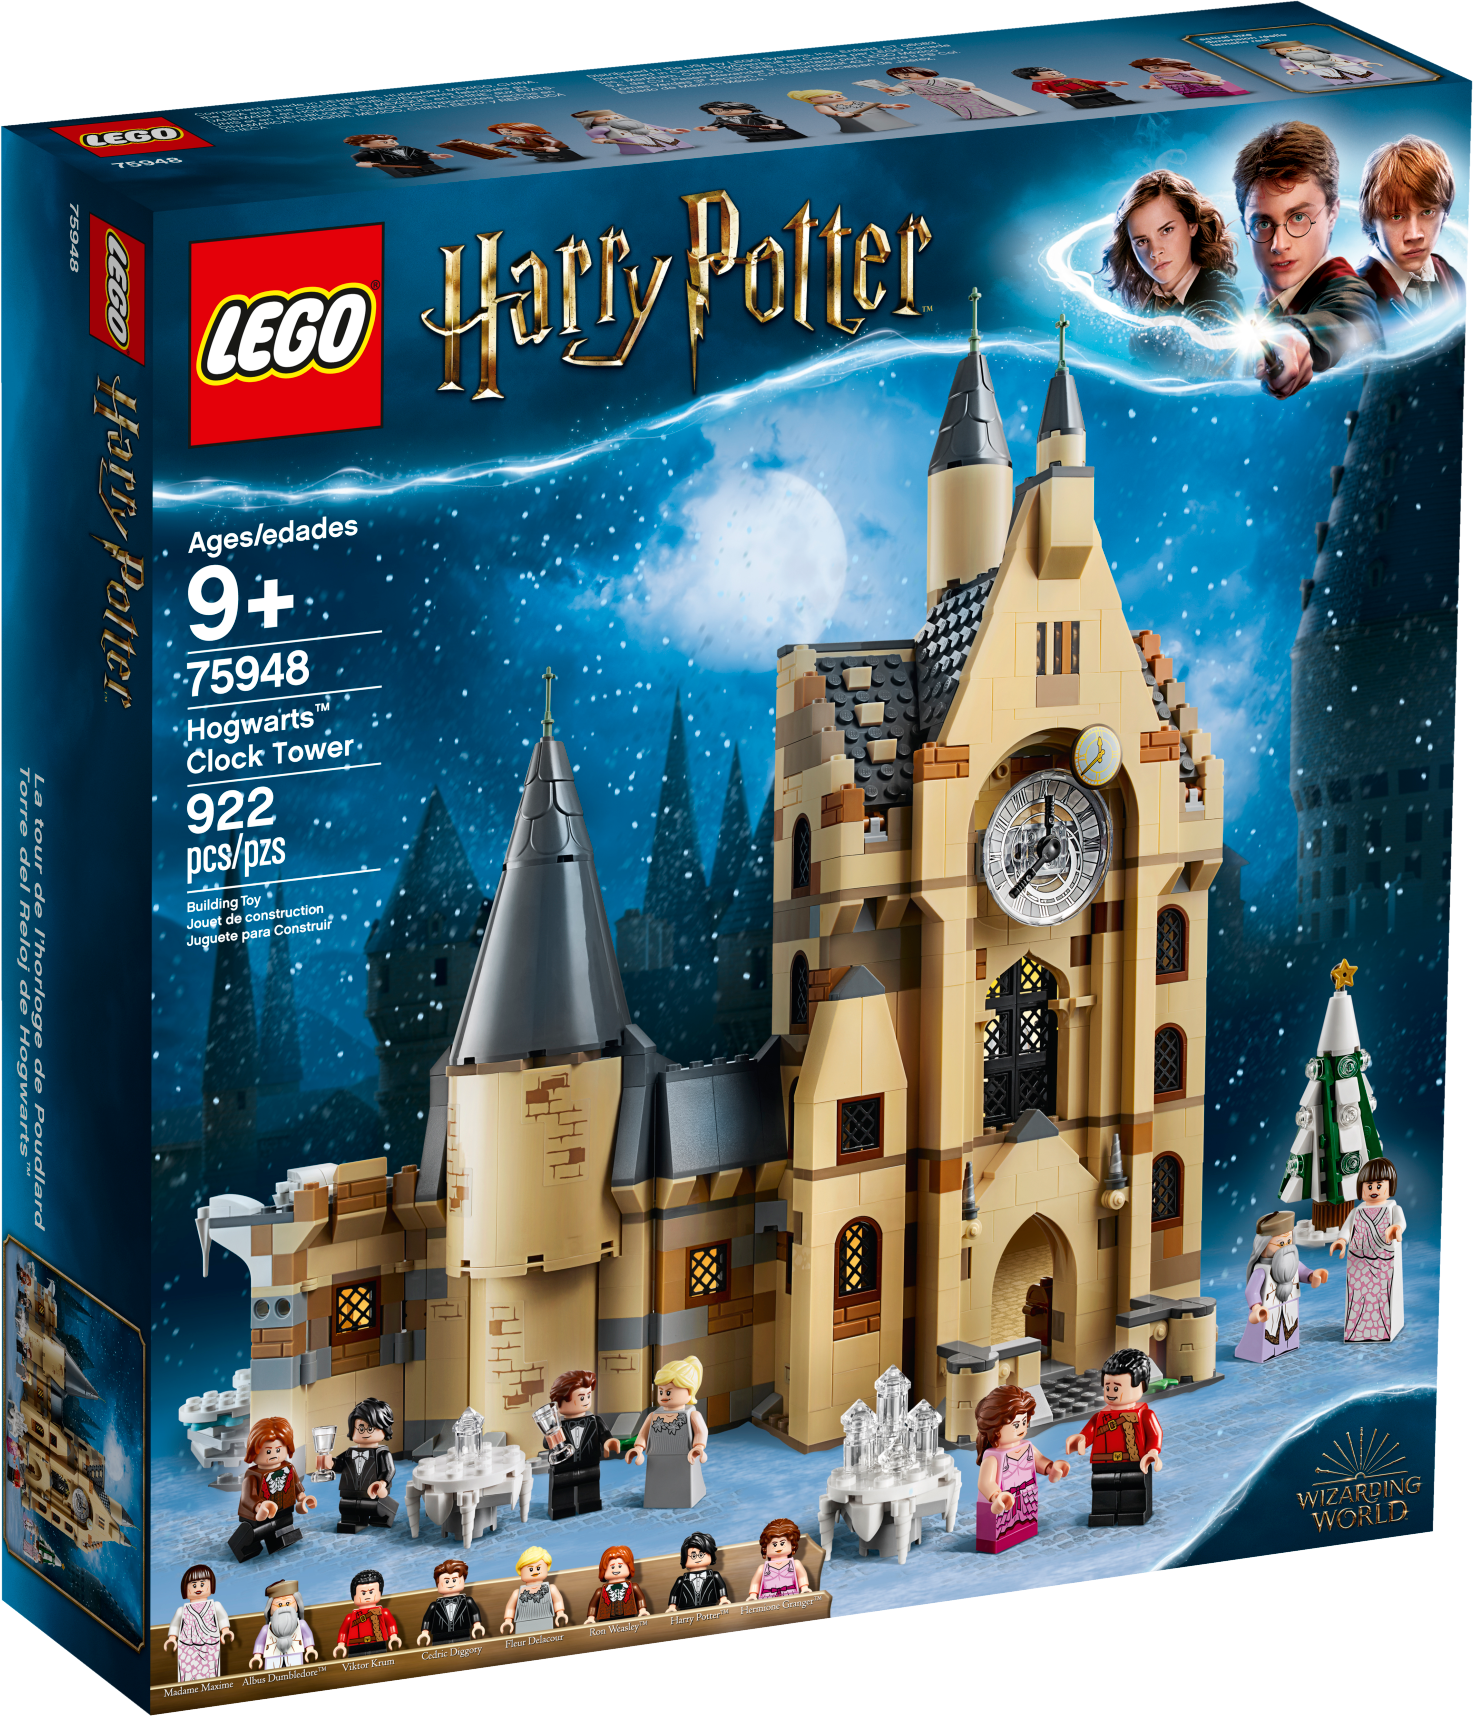 "Hogwarts"" Clock Tower"